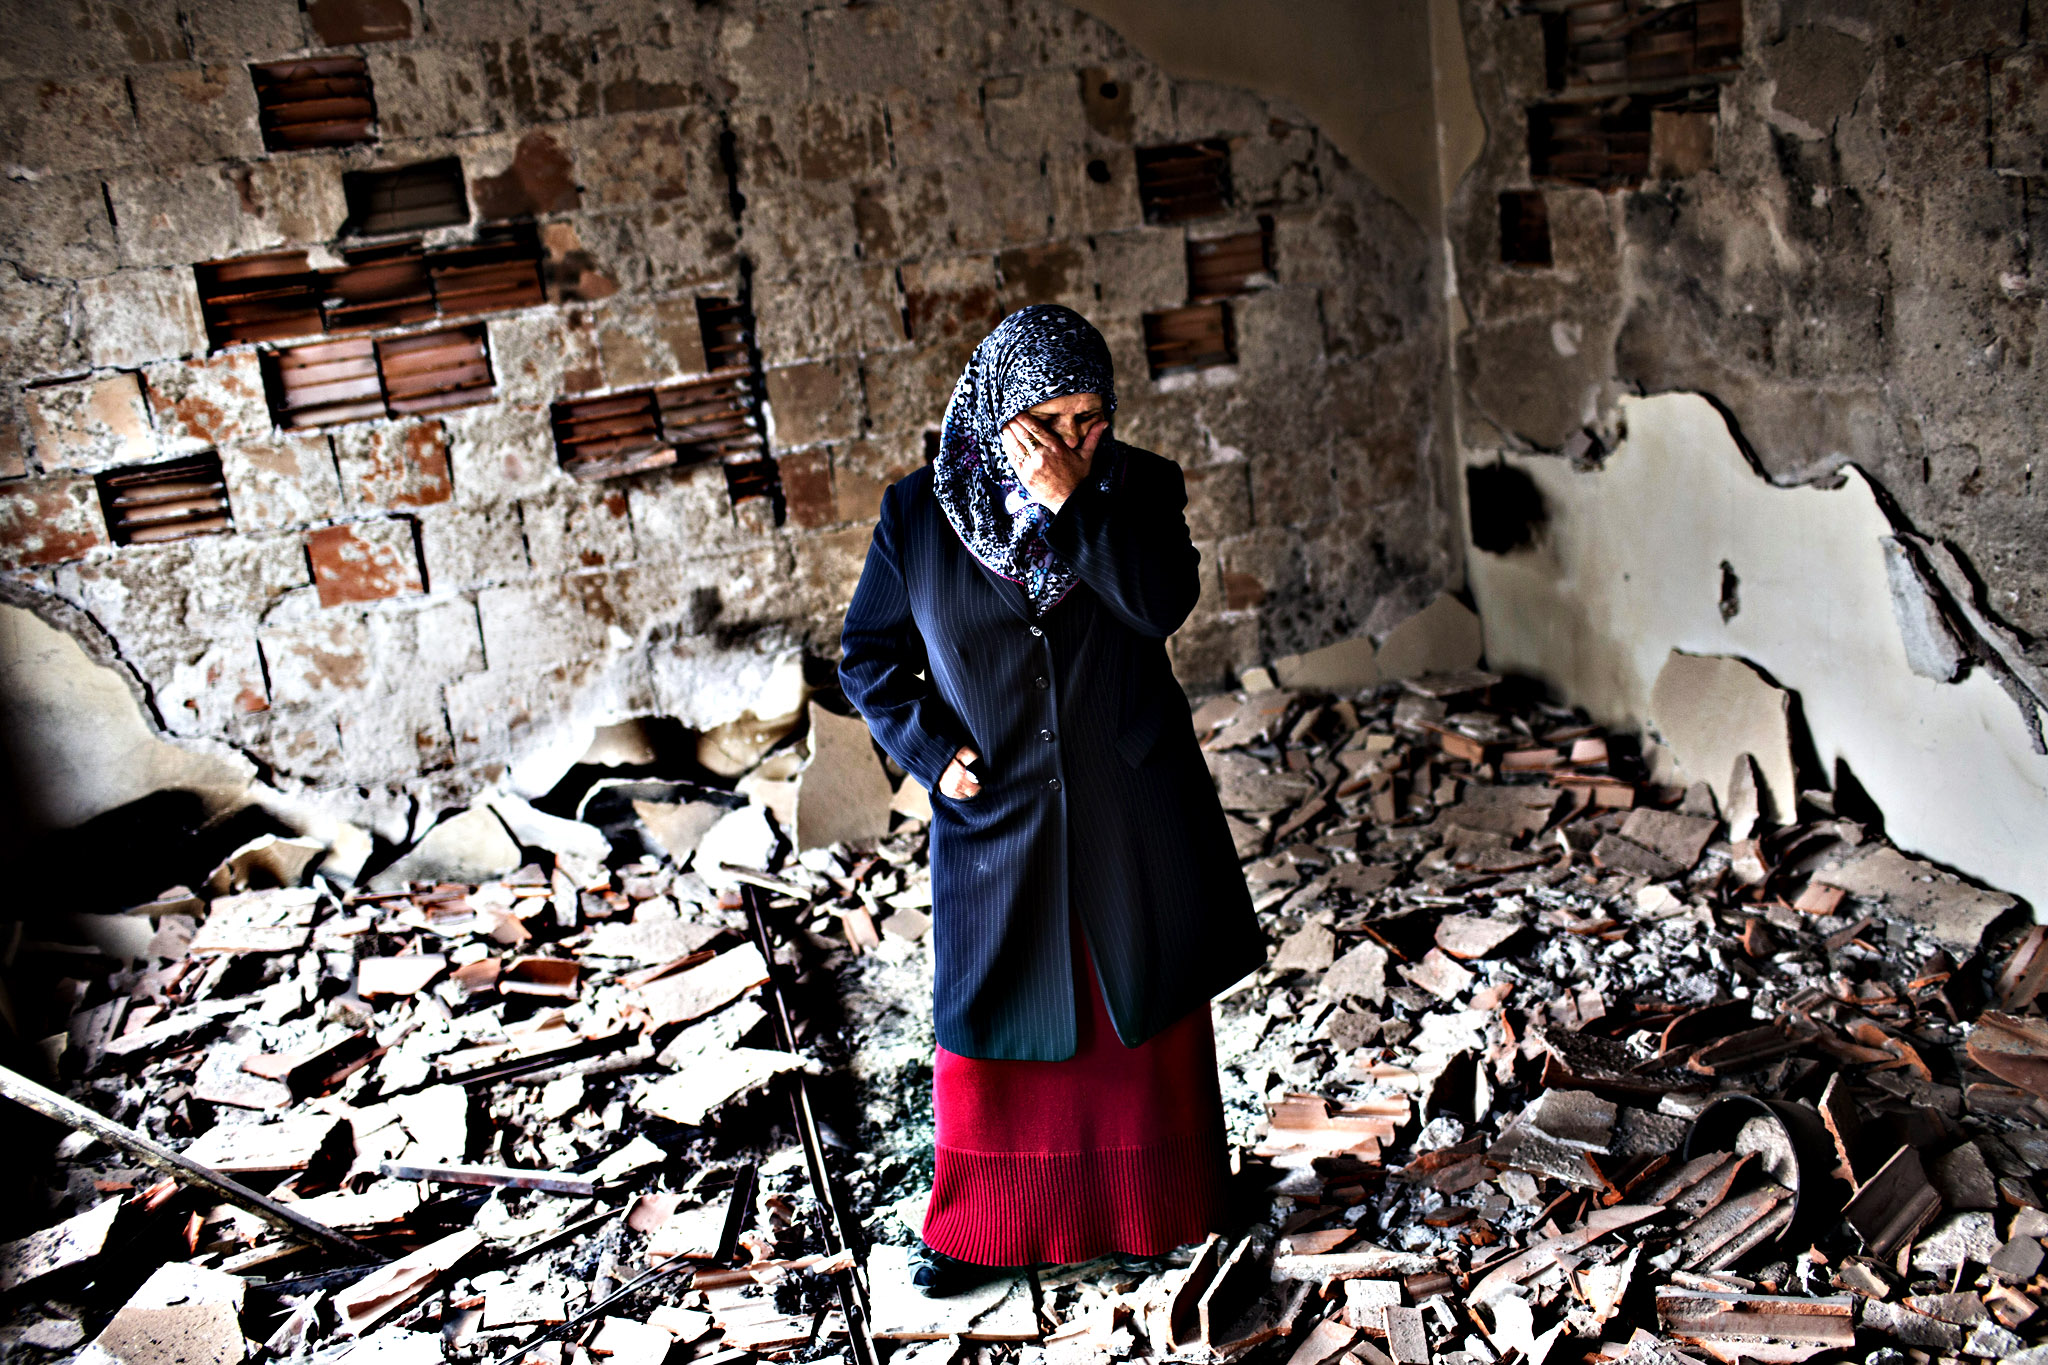 Habibe Biyali stands inside a room in her house heavily damaged by fighting in Kumanovo, Macedonia, Monday, May 11, 2015.  Residents are returning to their homes in a northern Macedonian town where a fierce weekend battle between special police units and alleged ethnic Albanian militants left 22 dead and at least 37 injured